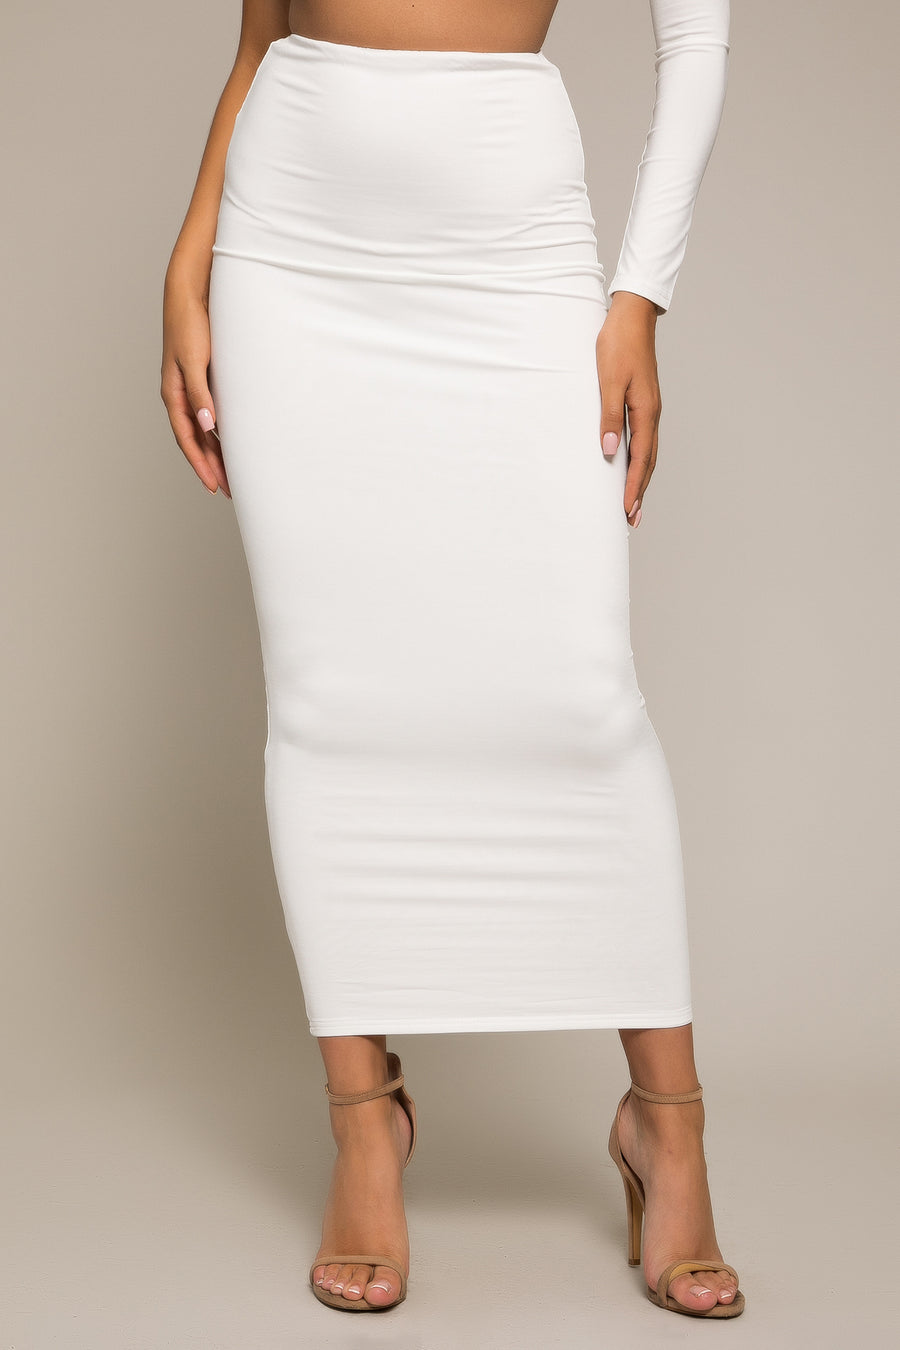 Kiara Longline Bodycon Midi Skirt White